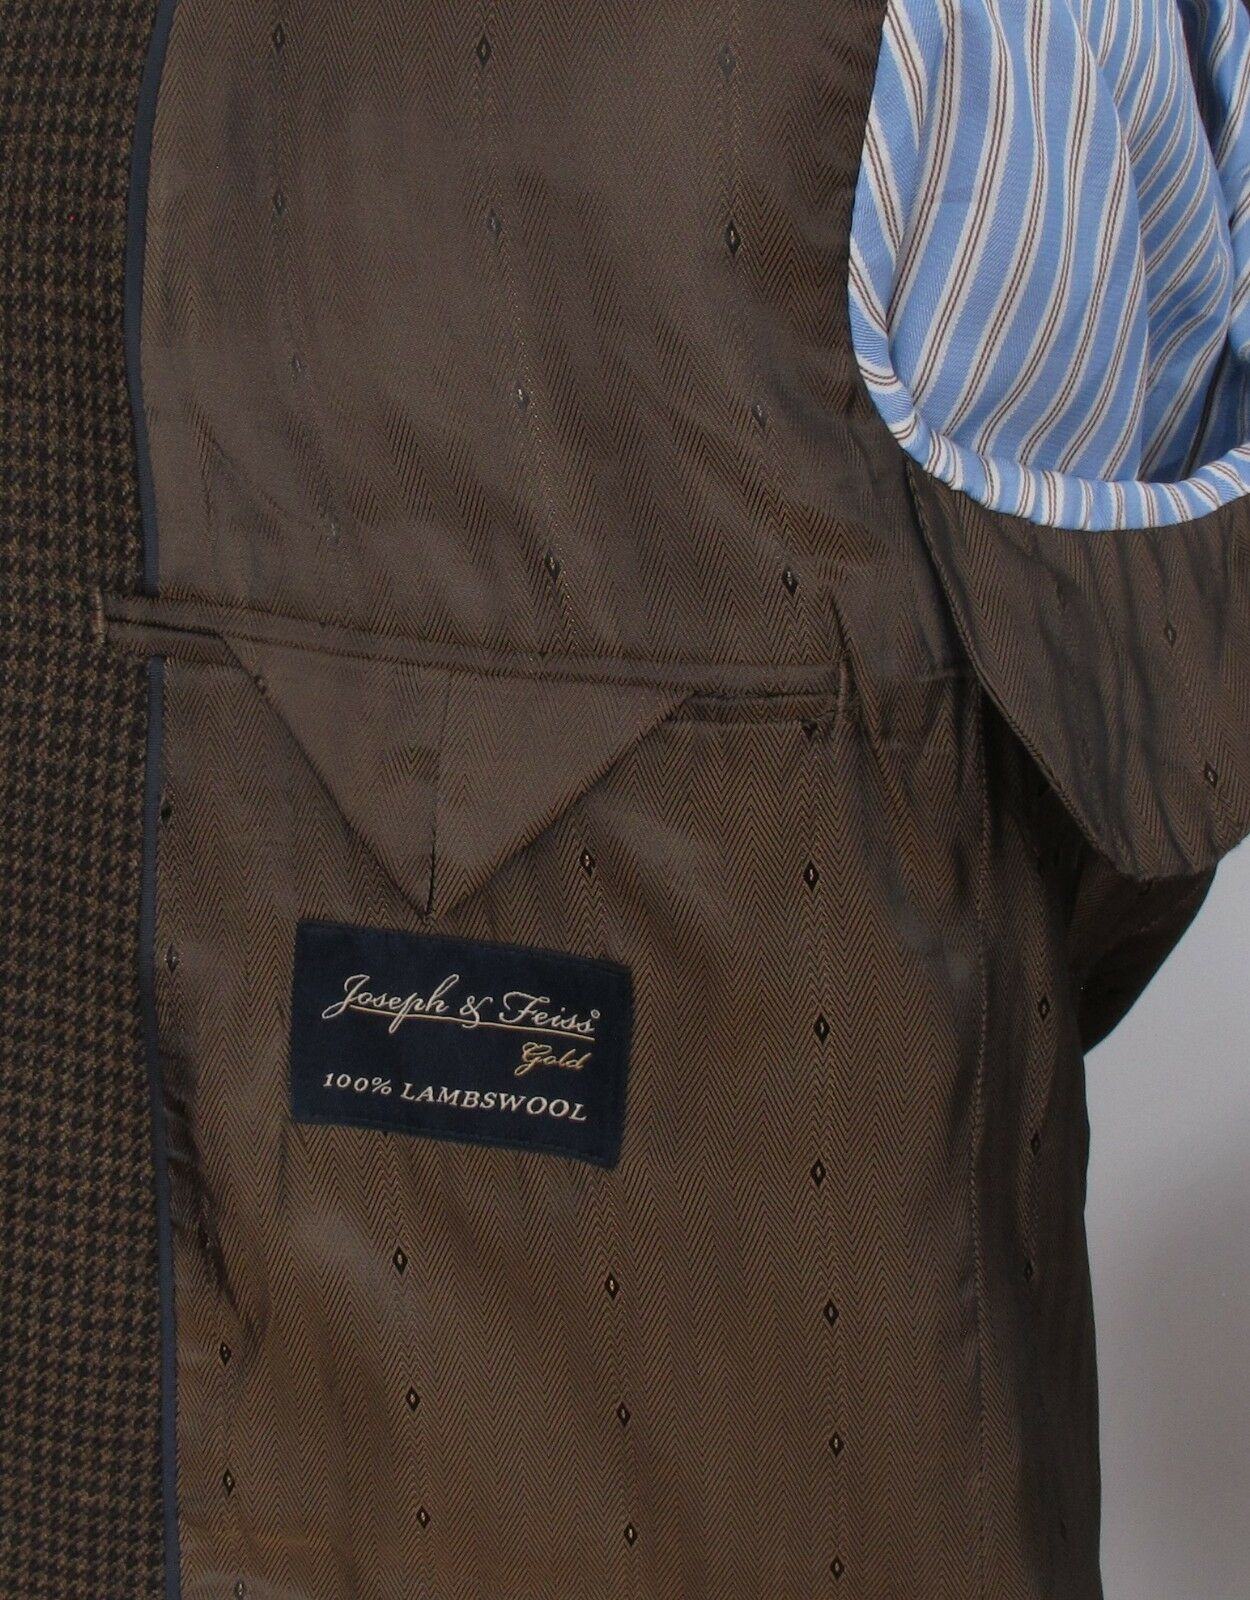 Joseph & & & Feiss oro Houndstooth Tweed Sportcoat 100% Lambswool 42L 2 Button e0fcd6